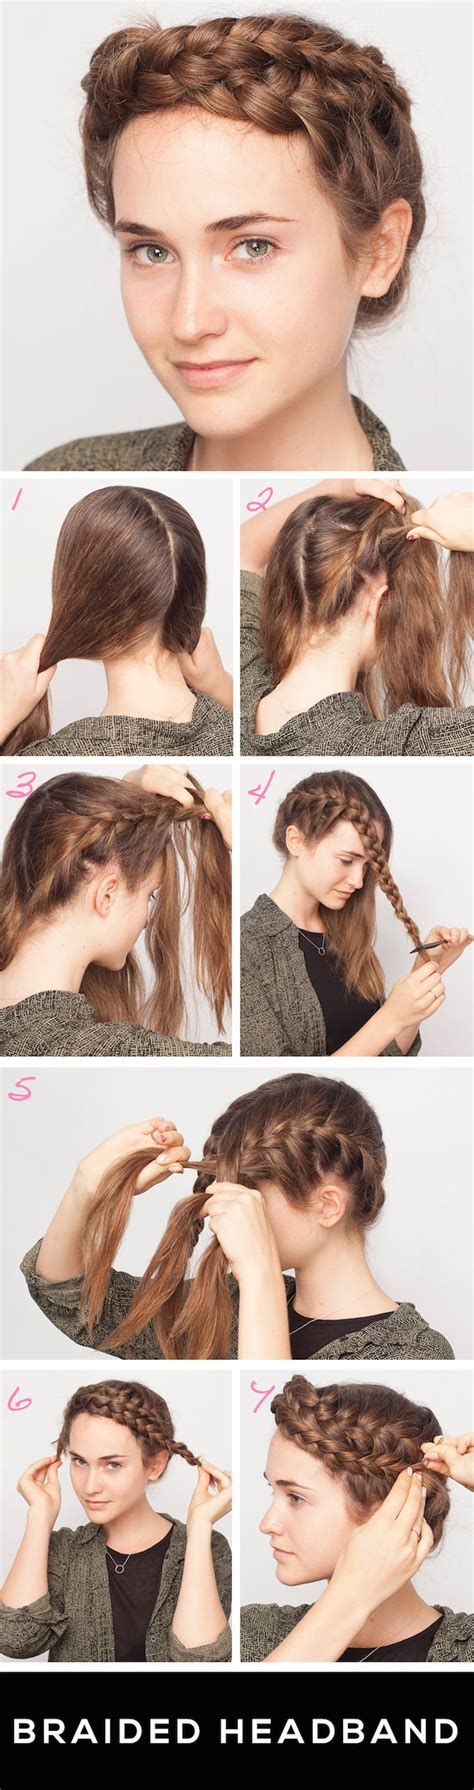 headband braid step by step braided headband learn to get this in just a few simple